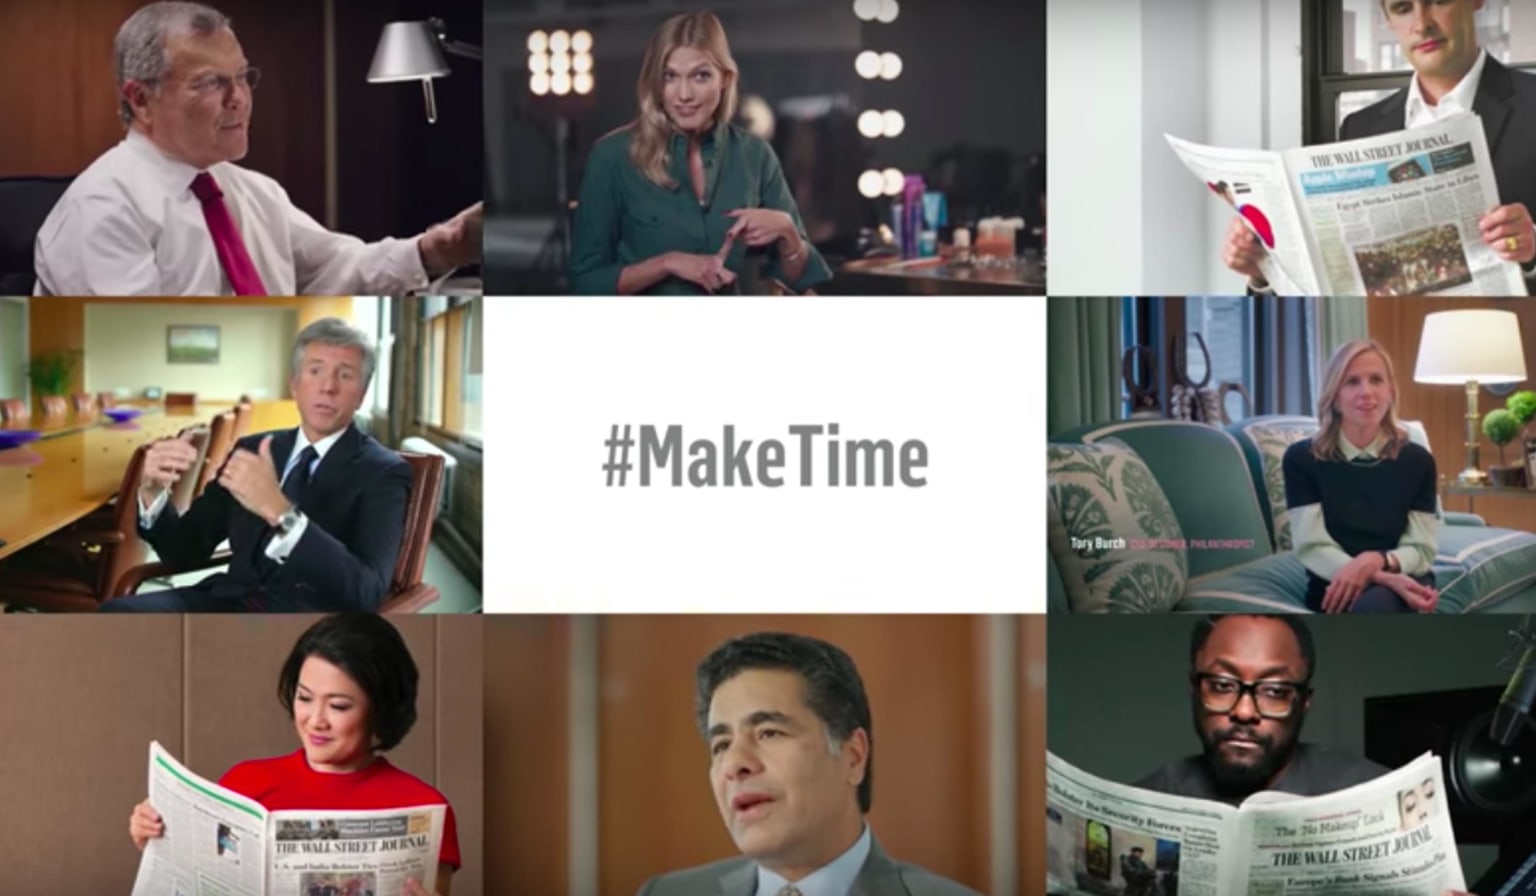 The Wall Street Journal - Make Time